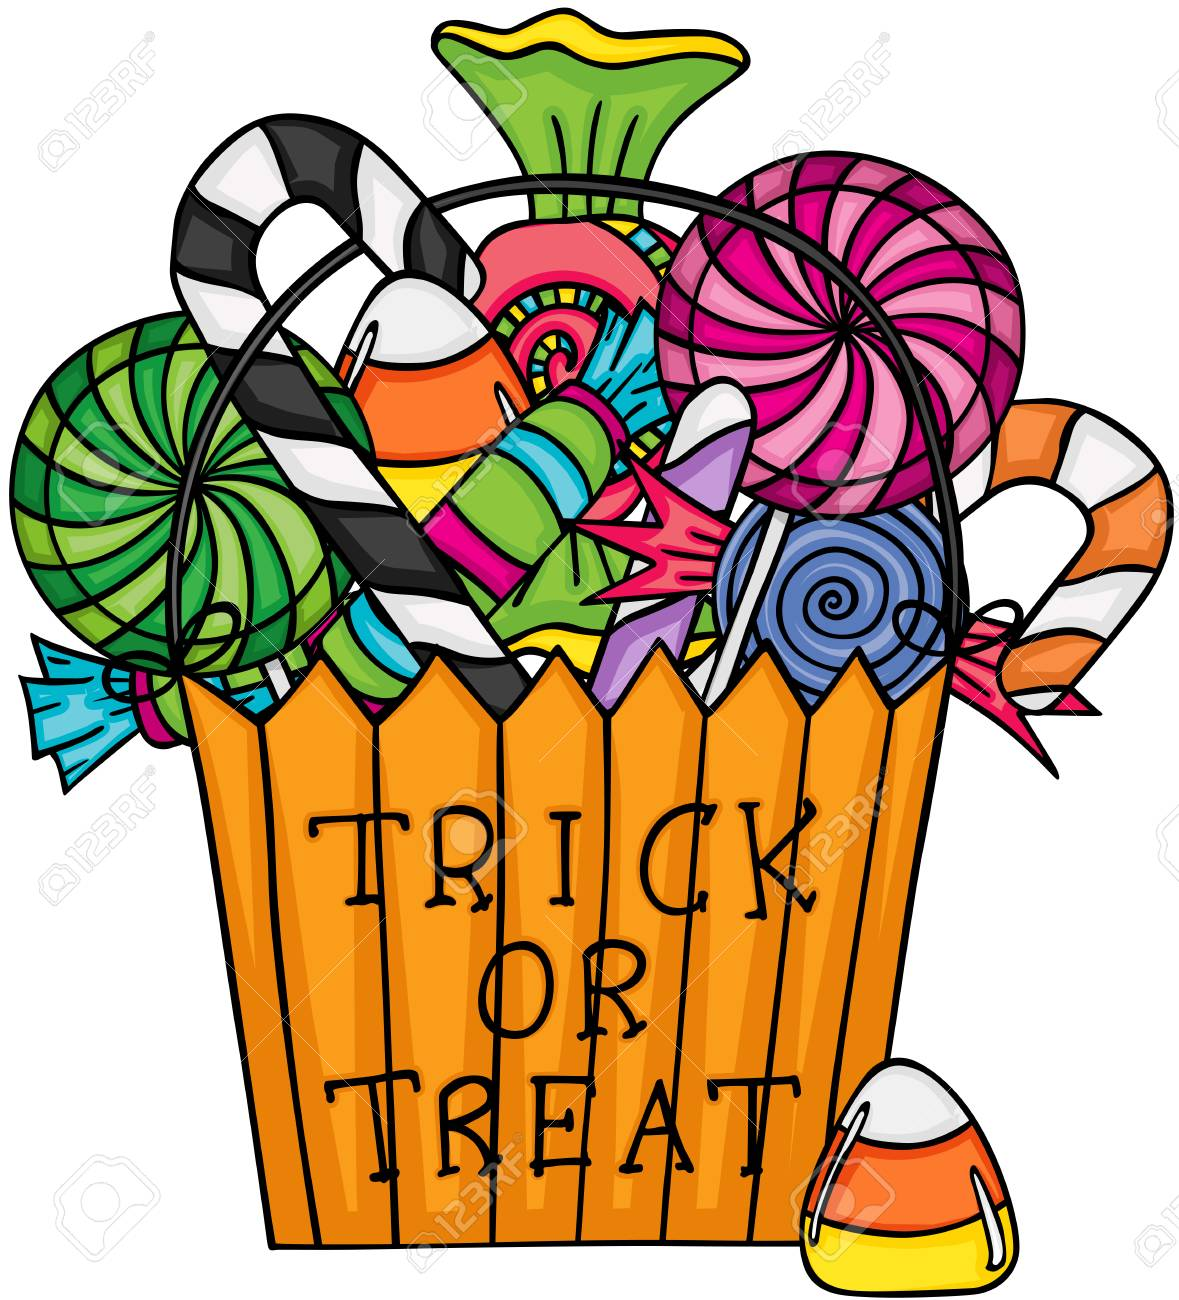 Halloween Trick Or Treat Filled With Candies Royalty Free Cliparts,  Vectors, And Stock Illustration. Image 87521182.